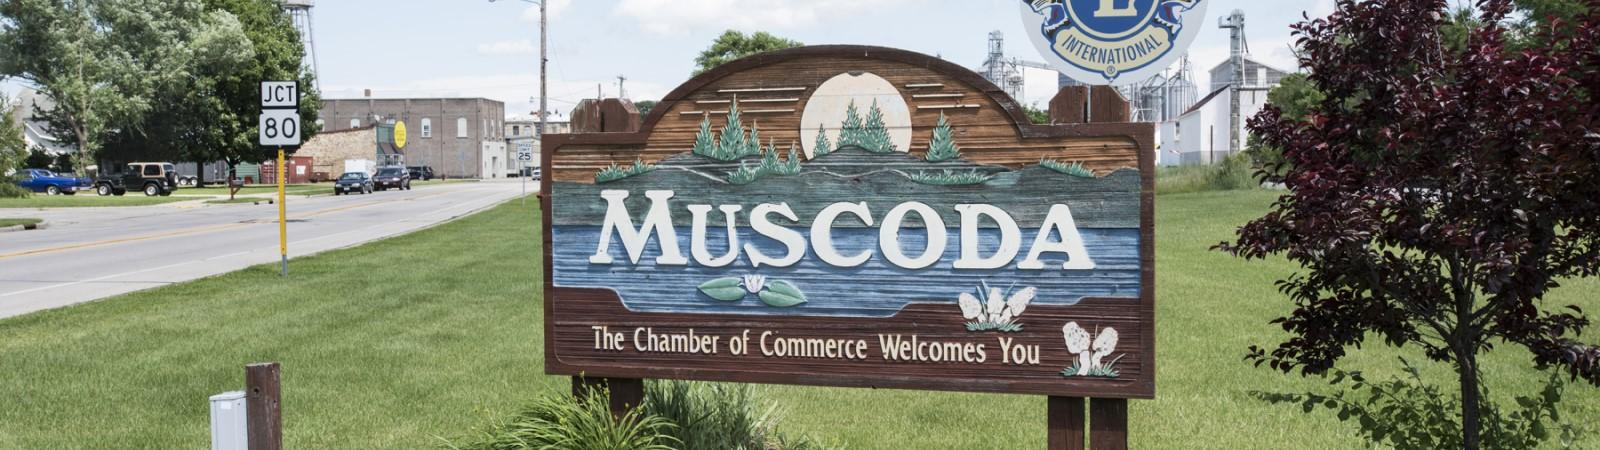 Village of Muscoda welcome sign